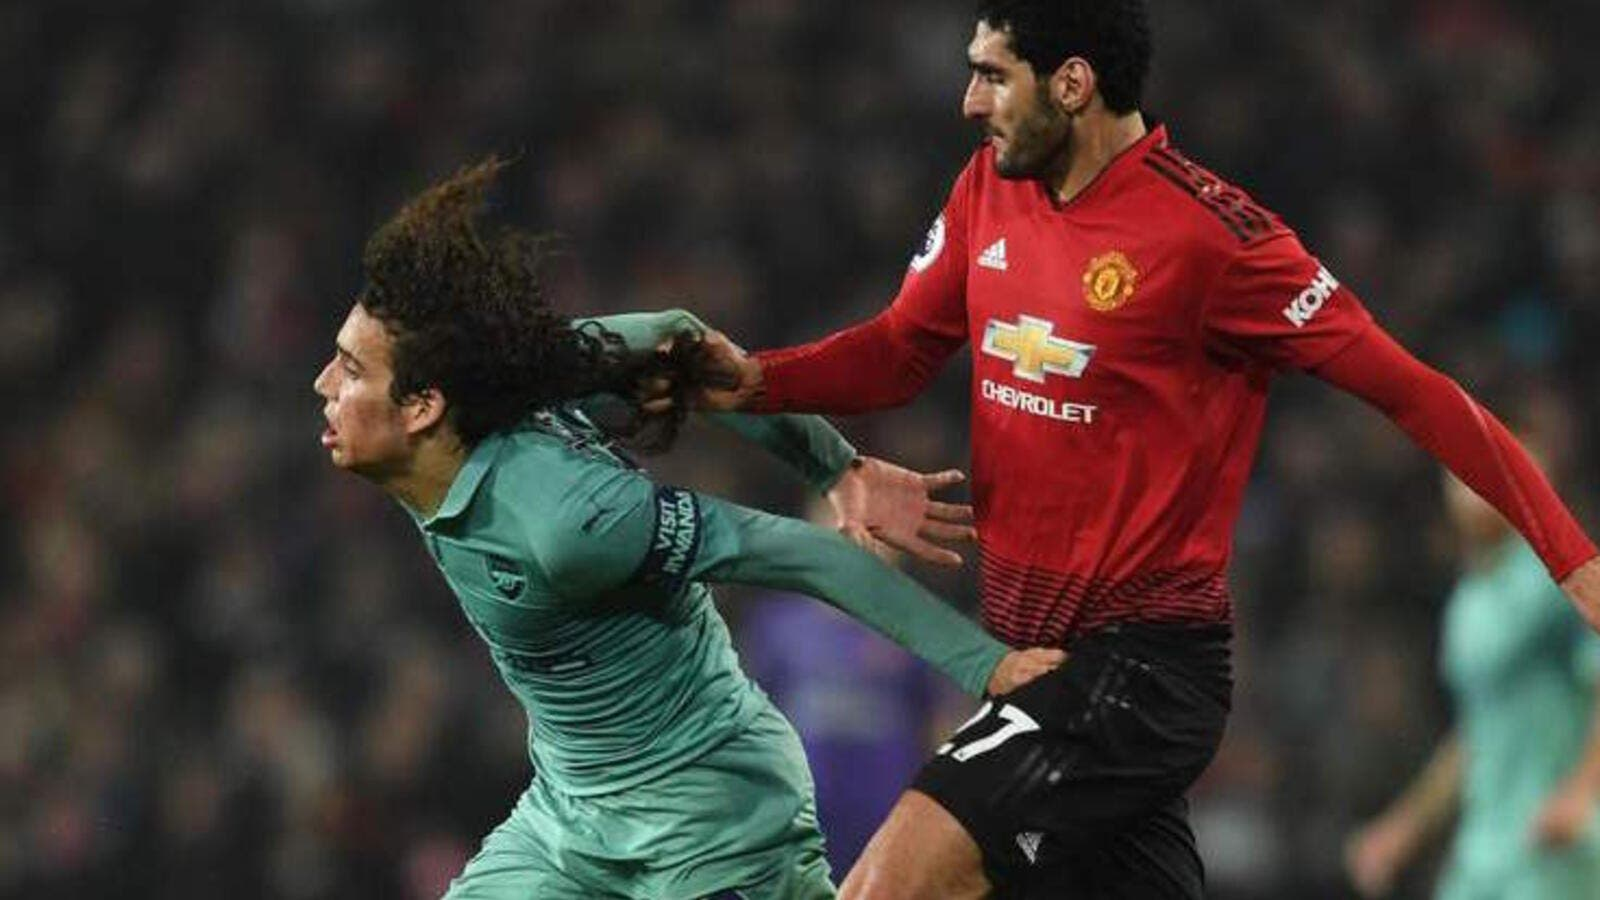 The Belgian conceded a free-kick by pulling his opponent by the hair in the draw with Arsenal, although he's unlikely to face any retrospective action (Photo: standard.co.uk)